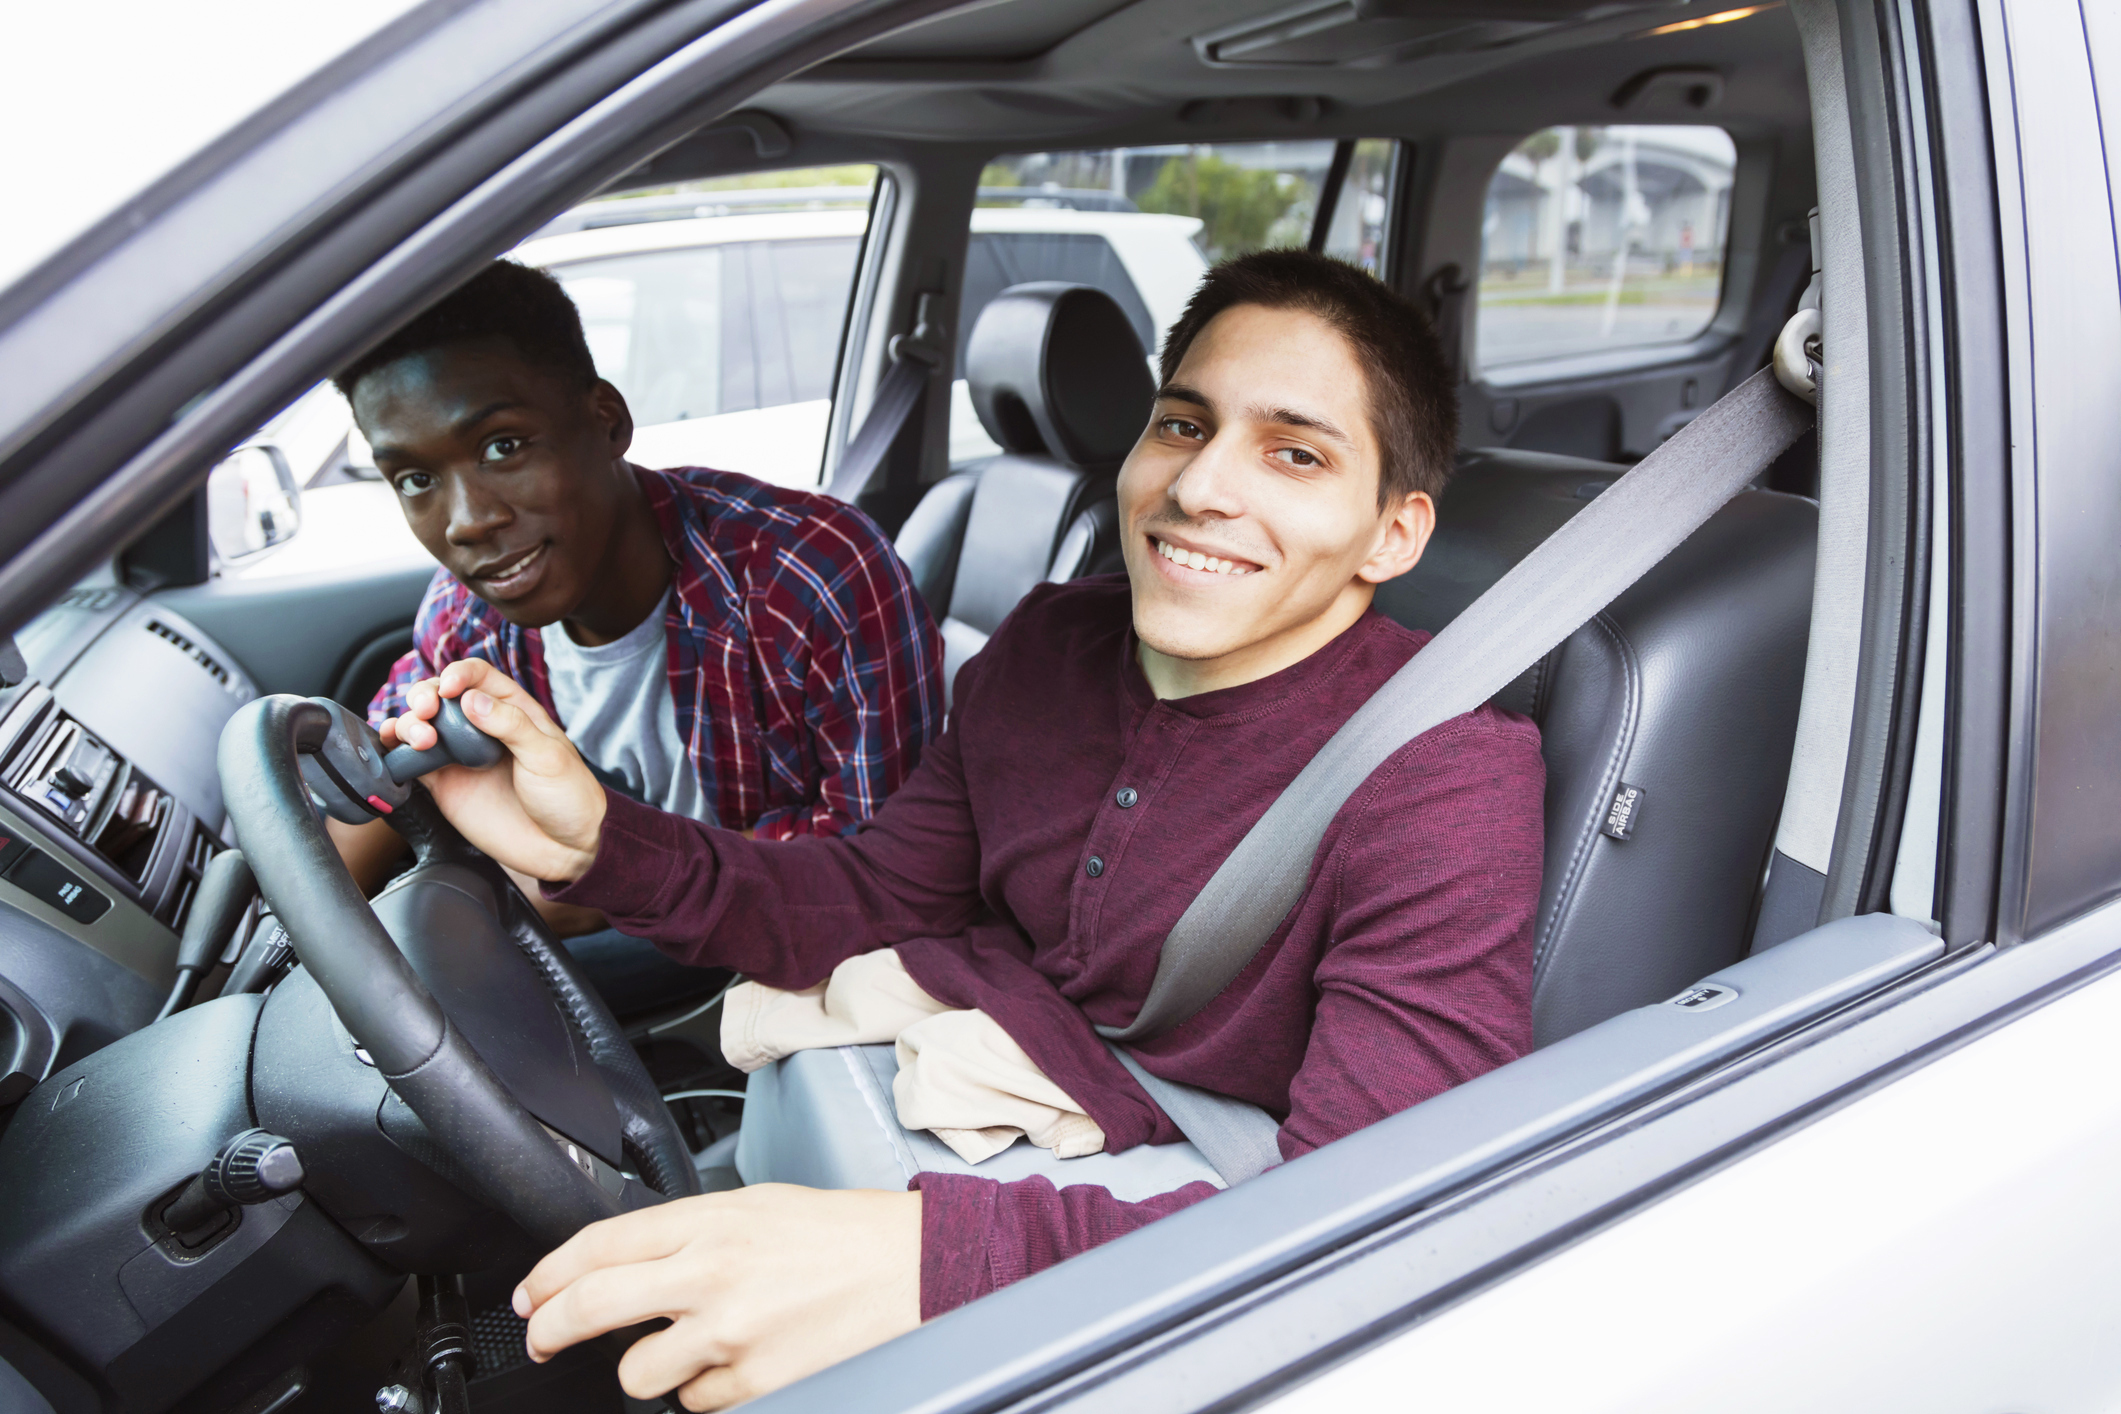 Two friends smiling together in a car in a parking lot. The young man driving is an amputee.